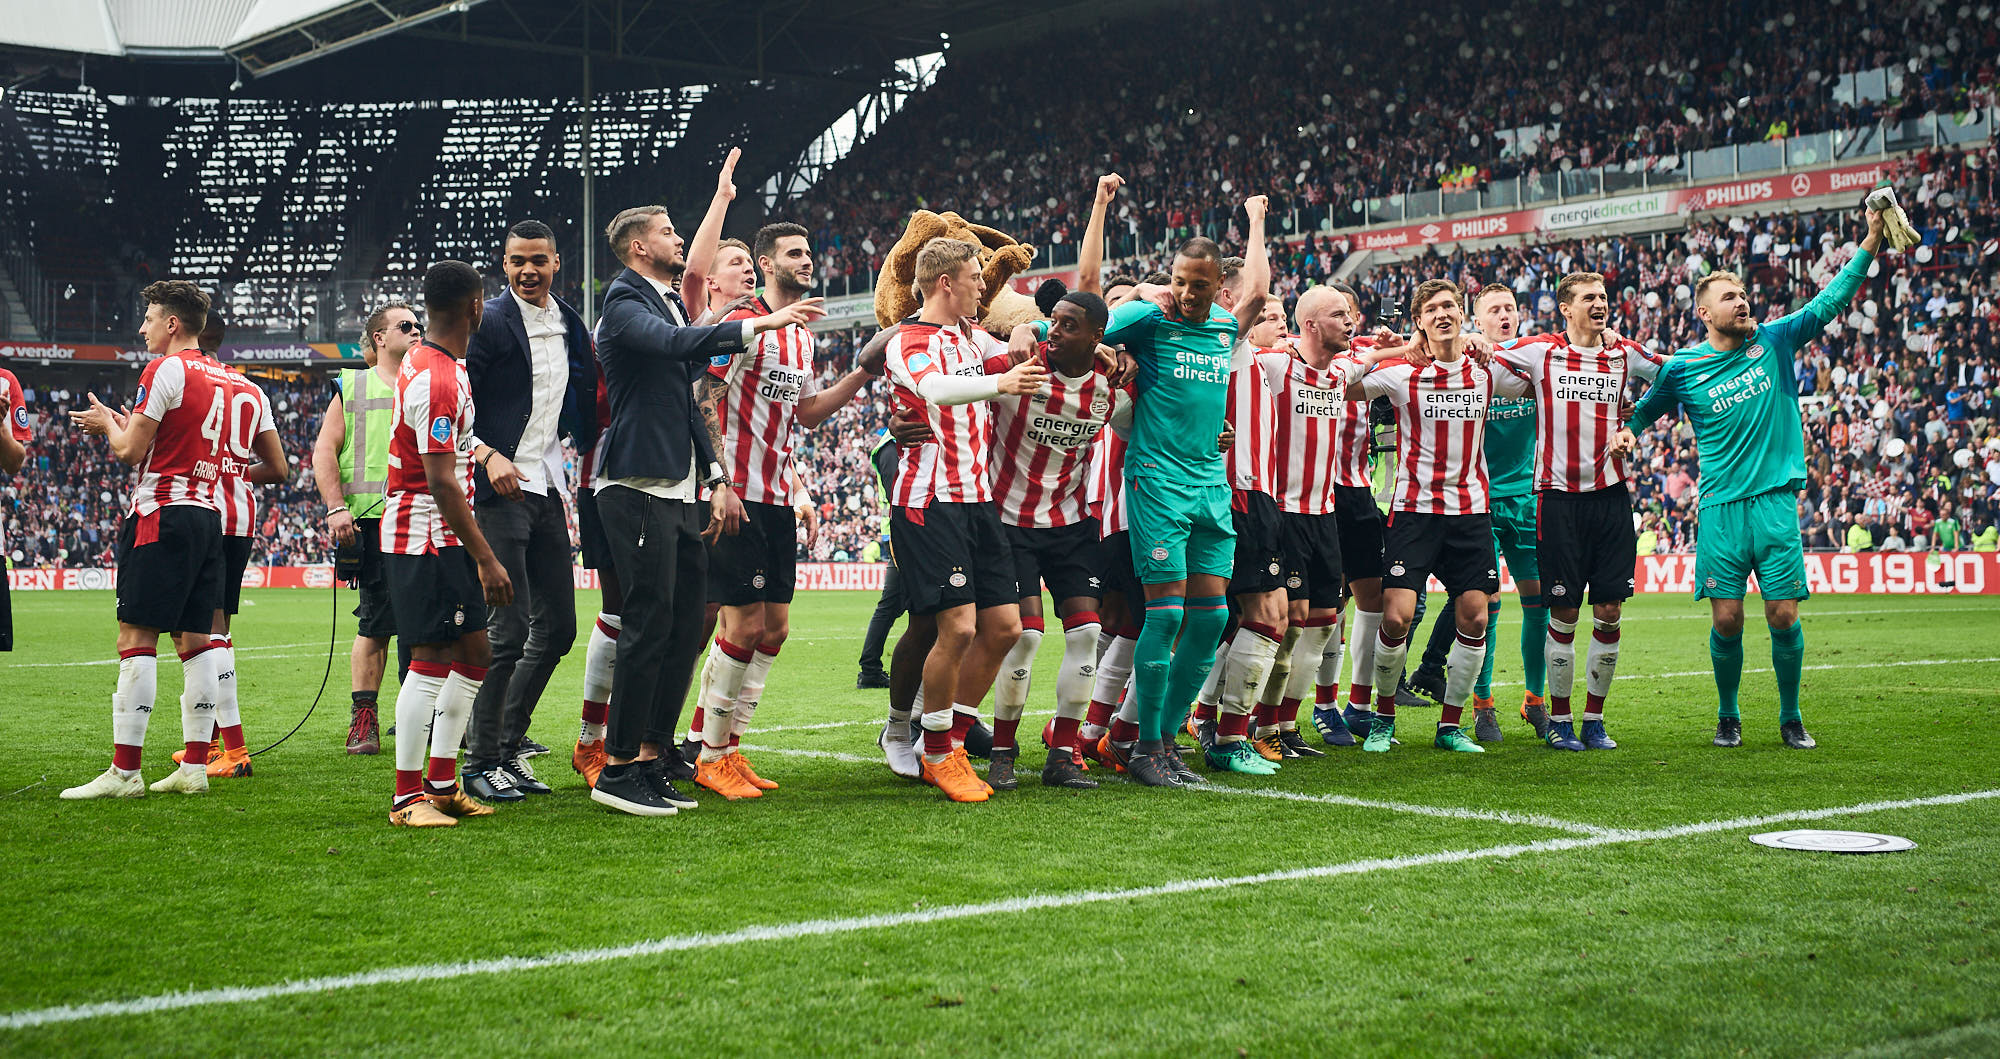 PSV Eindhoven football team celebrates winning the Eredivisie title